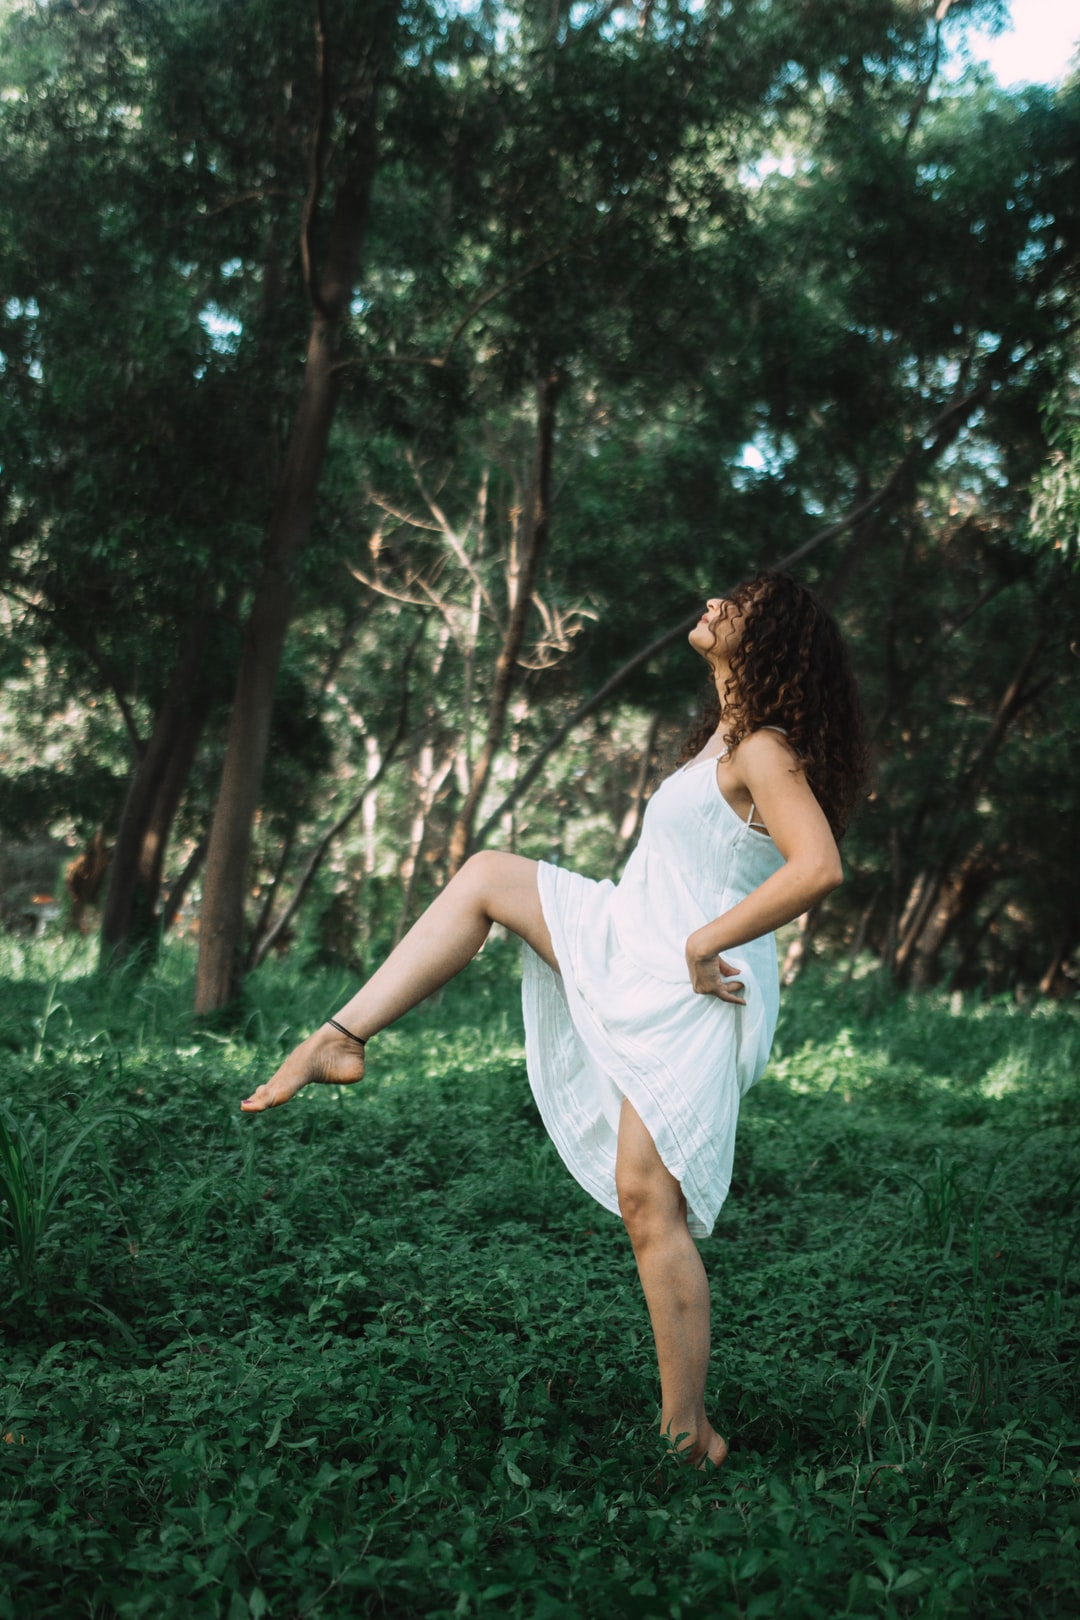 Dancing with Nature.